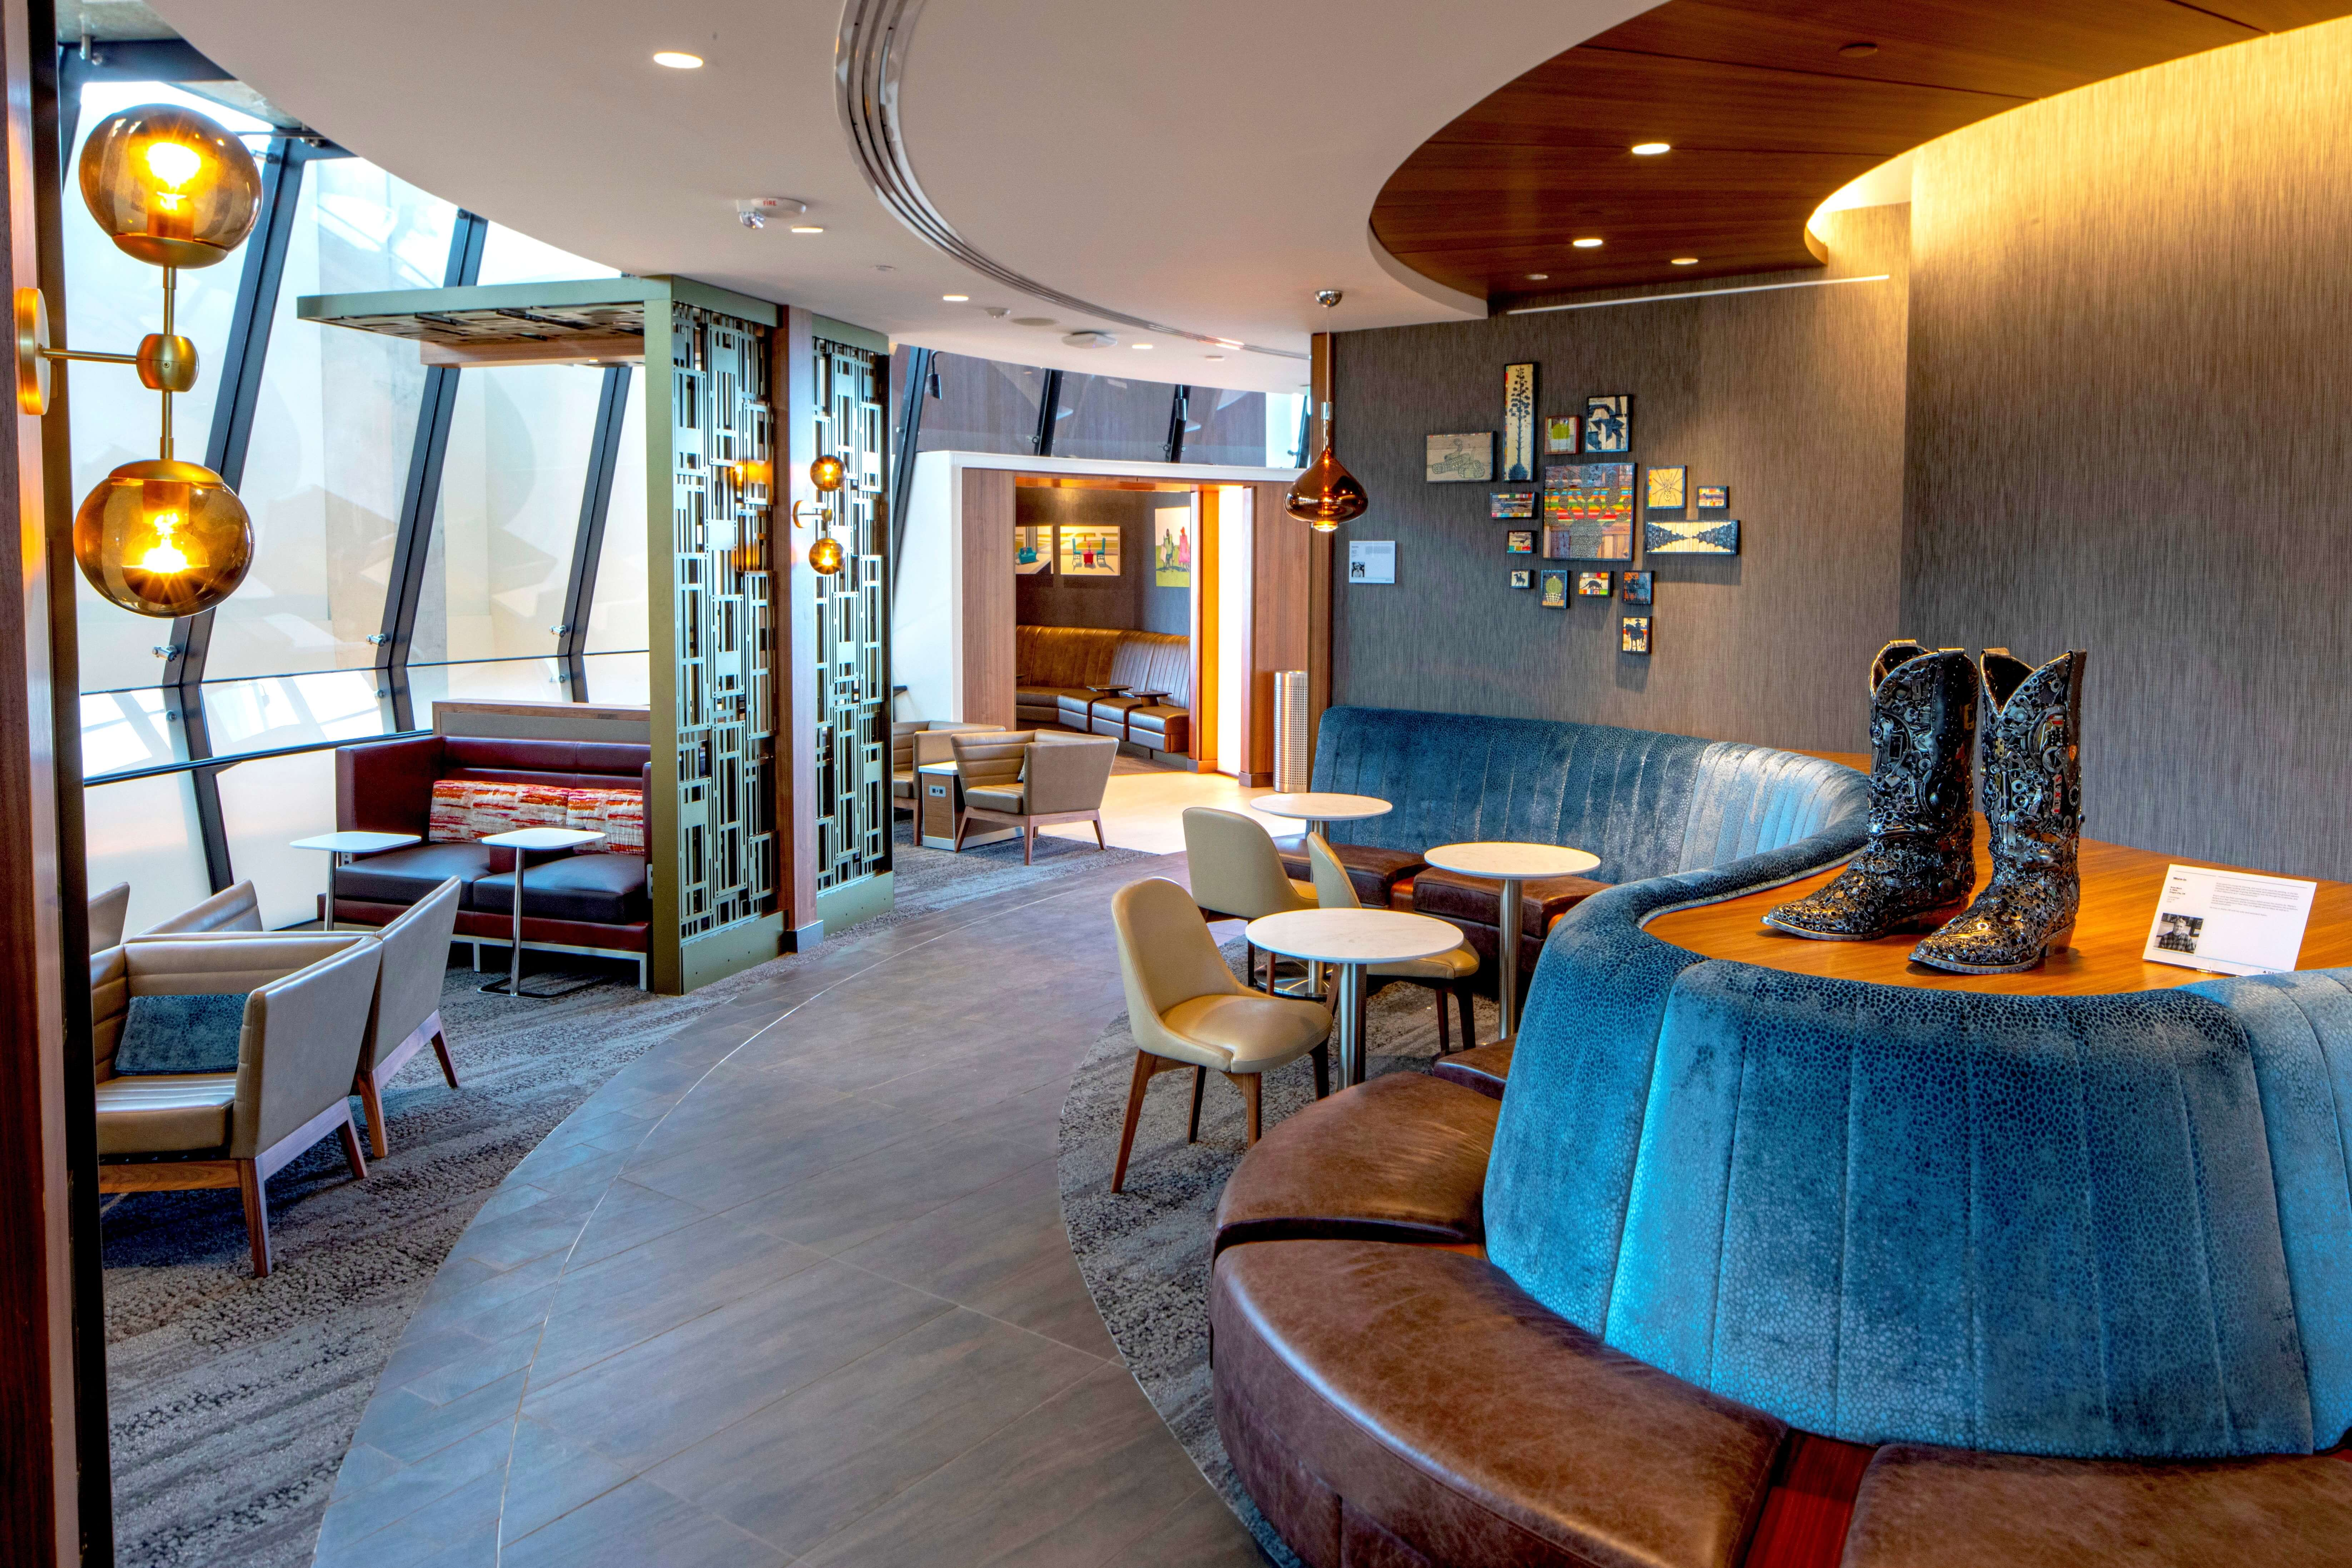 Newest Delta Sky Club evokes eclectic Austin